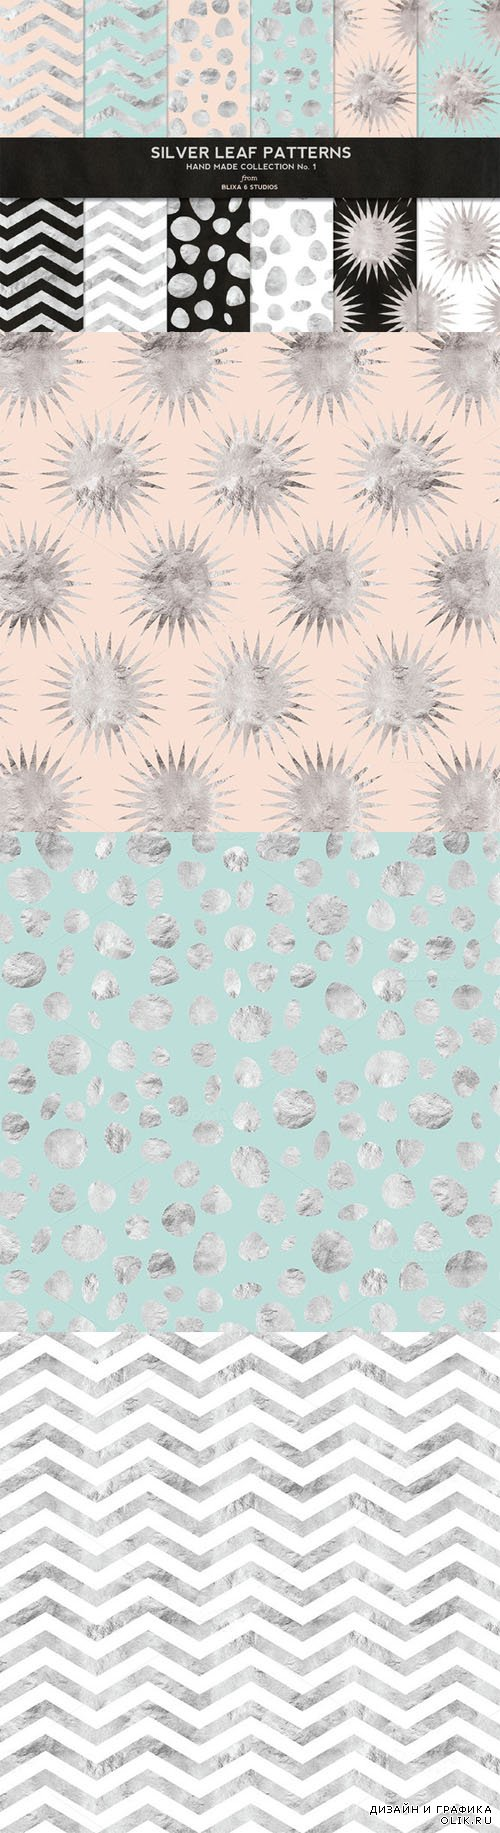 Silver Foil Digital Patterns No. 1 - Creativemarket 159630